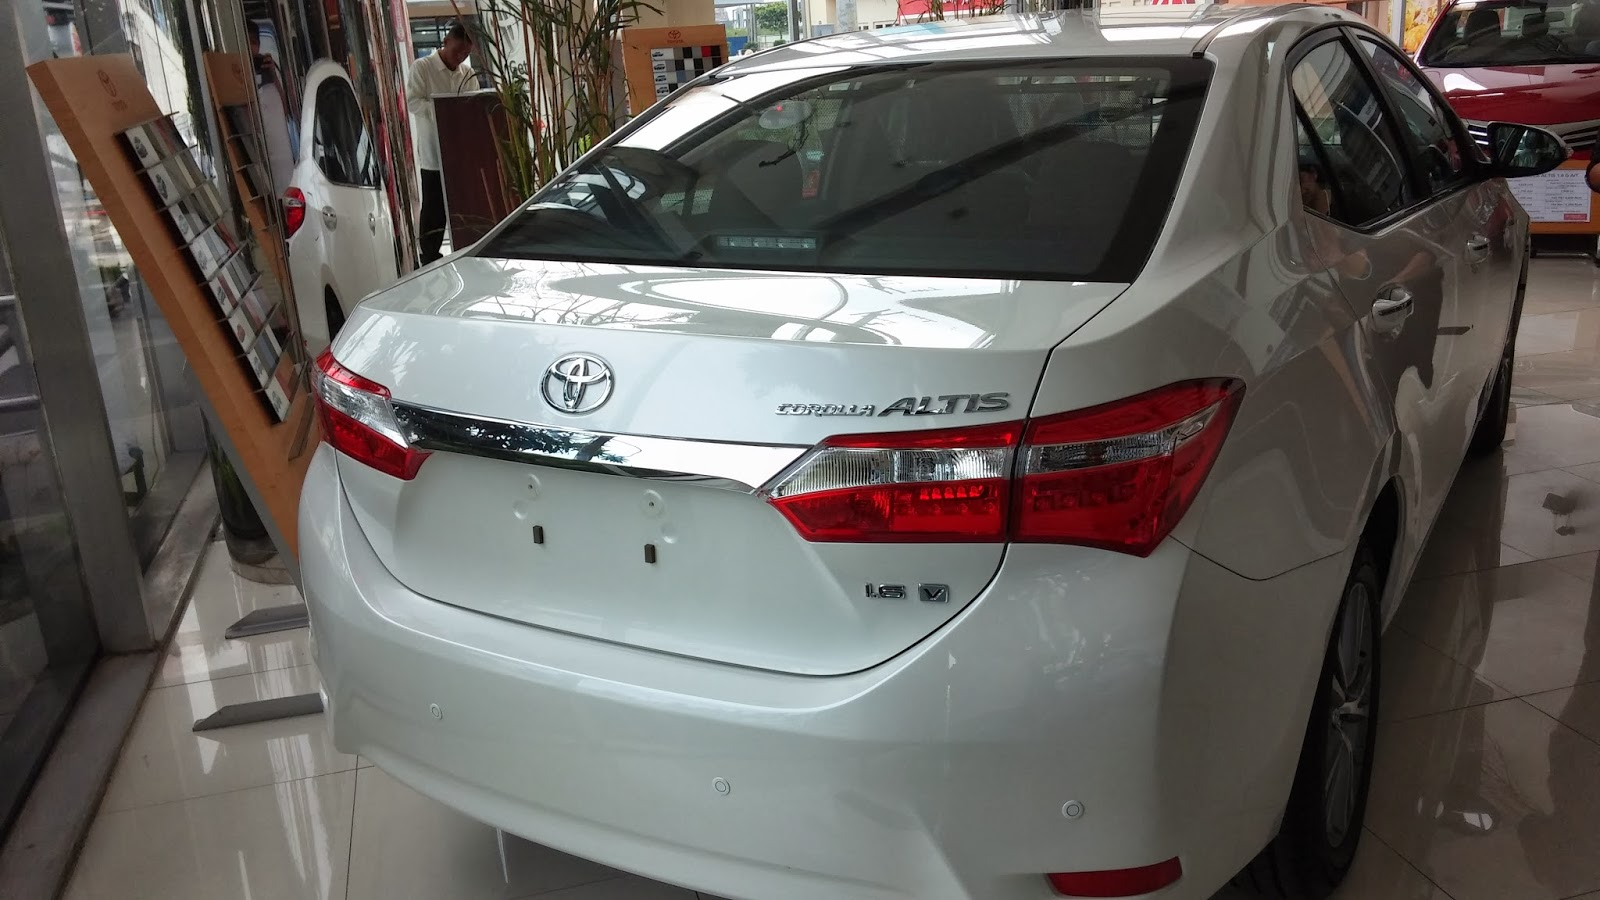 Brand New Toyota Altis Price Grand Avanza Biru All Corolla 2014 Lakbay Atbp